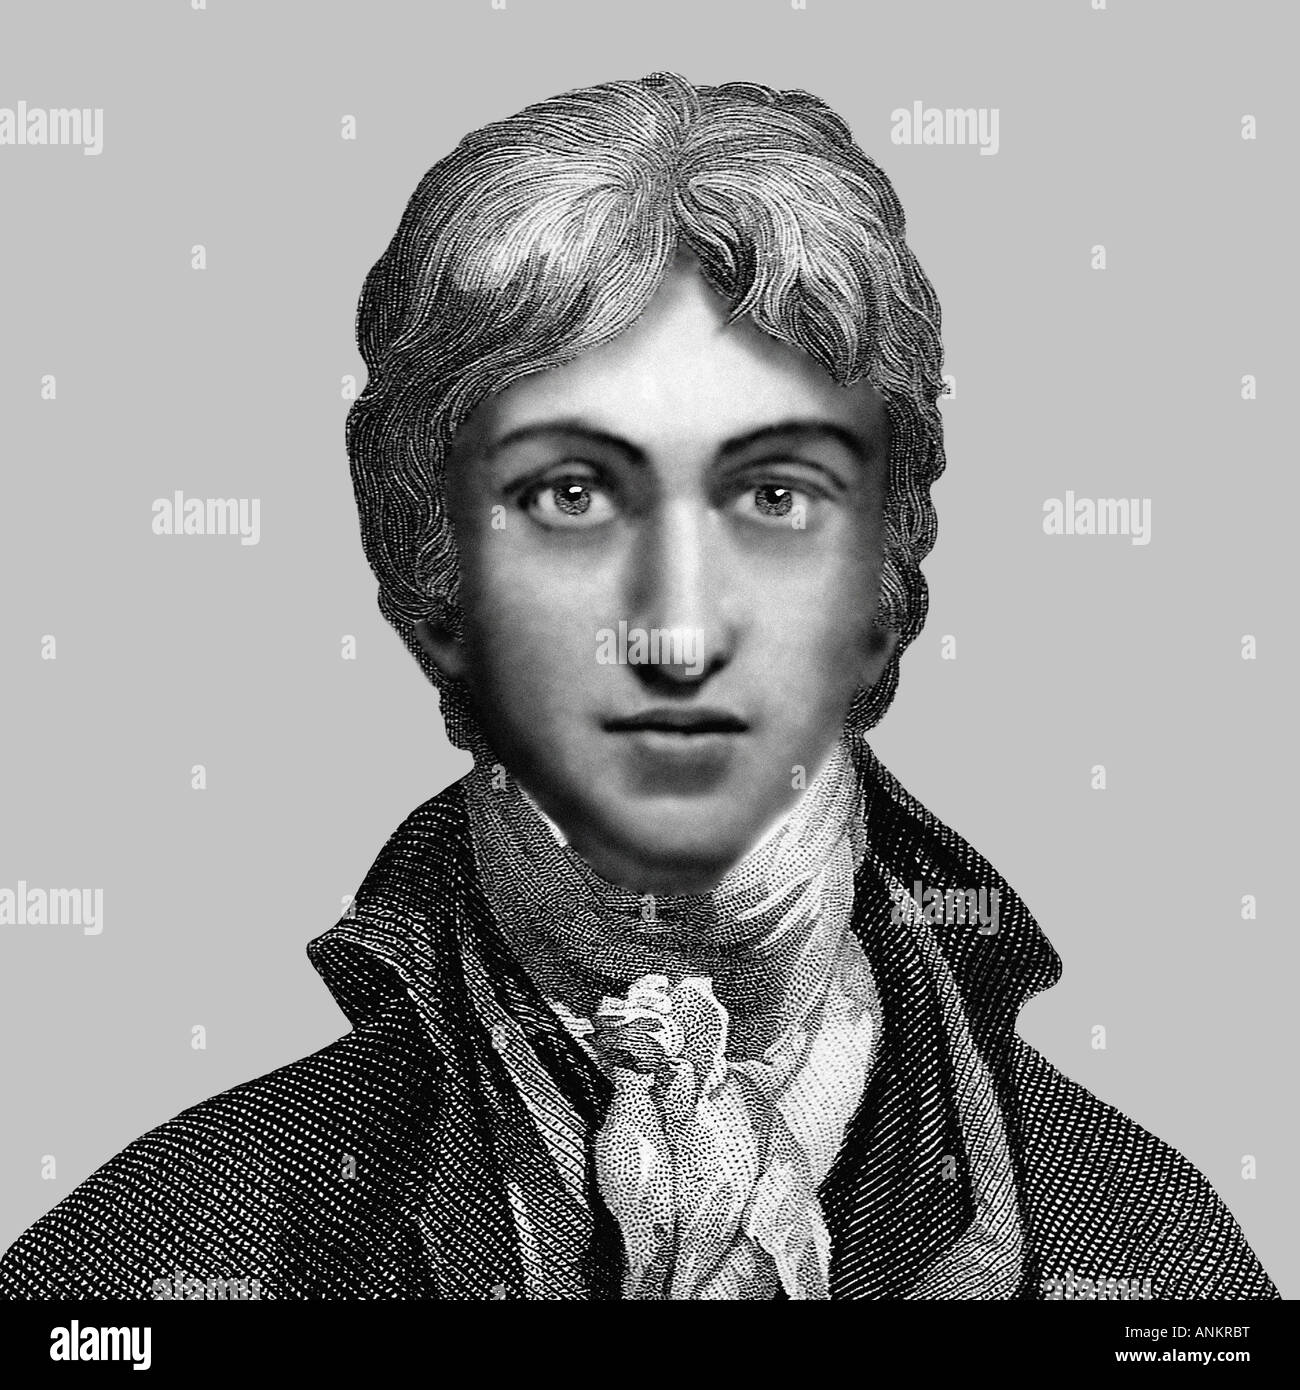 Joseph Mallord <b>William Turner</b> 1775 1851 English Painter Stock Photo - joseph-mallord-william-turner-1775-1851-english-painter-ANKRBT